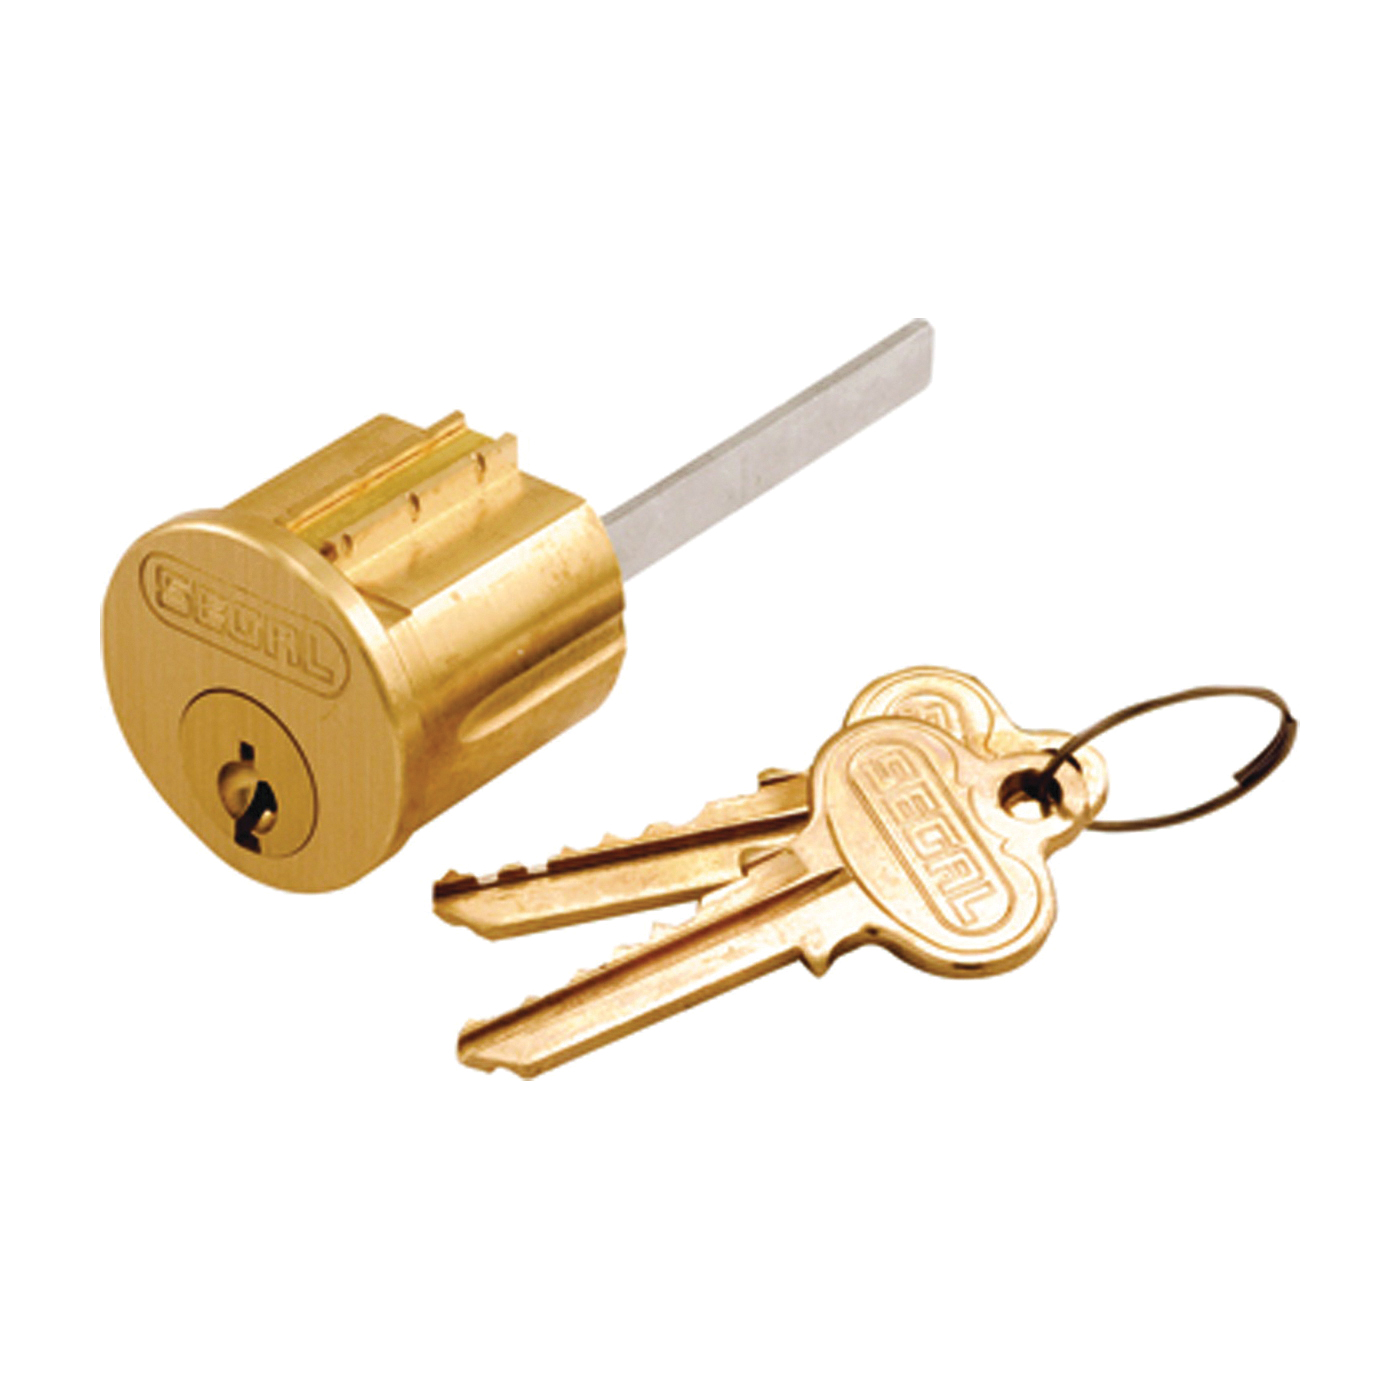 Picture of Prime-Line SE 70002 Lock Cylinder, Keyed Different Key, Brass, Brushed Brass, Segal Keyway